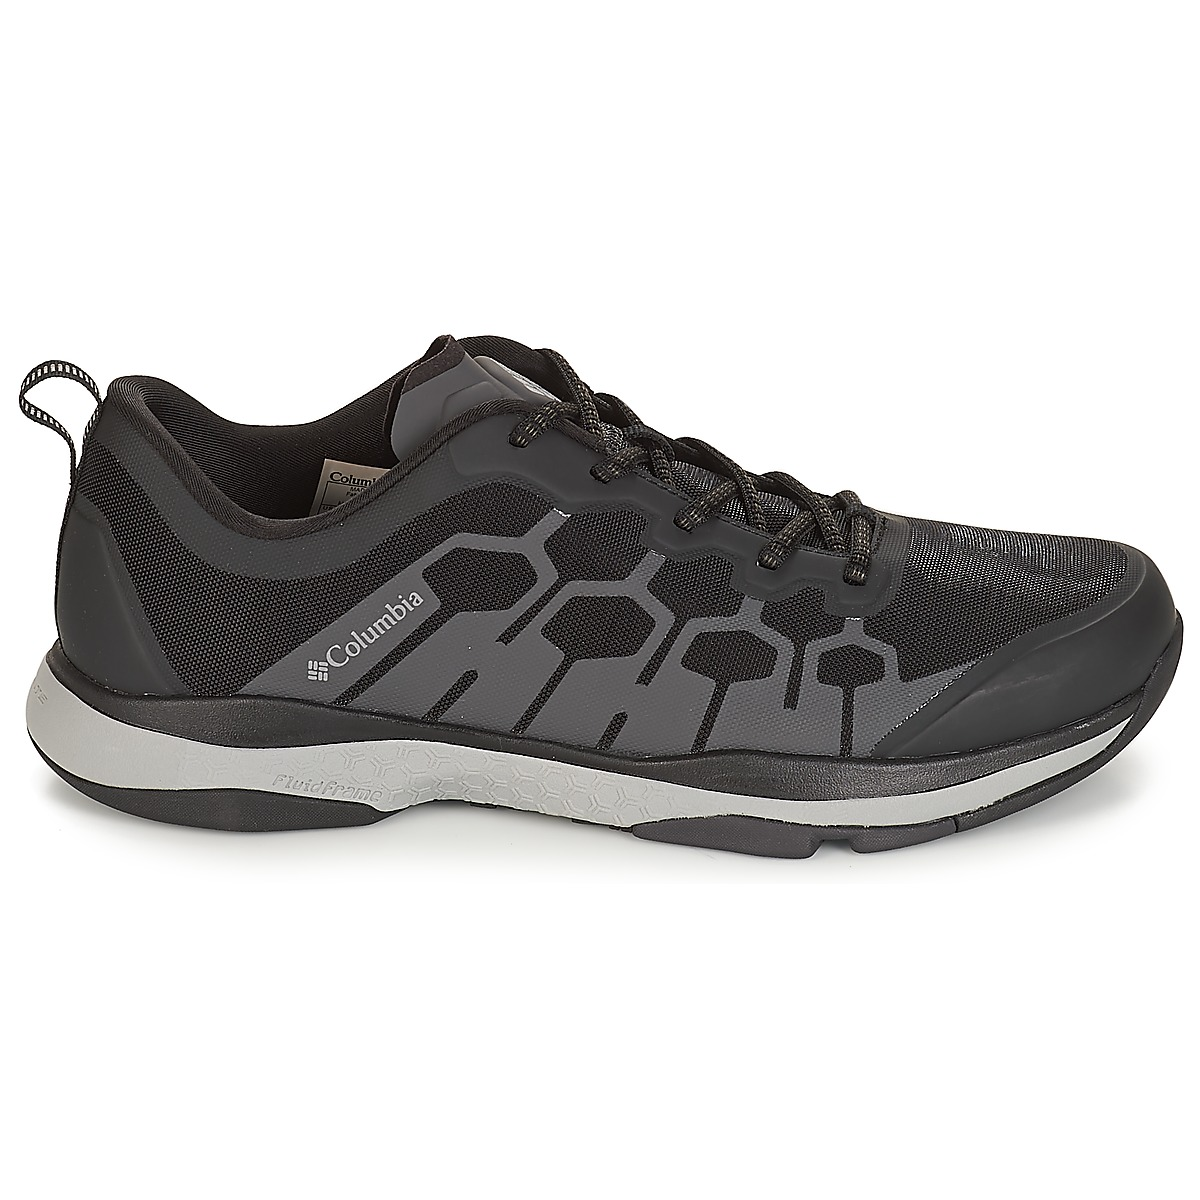 Trail Chaussures Columbia Columbia Fs38 Ats Chaussures HIE2D9YW